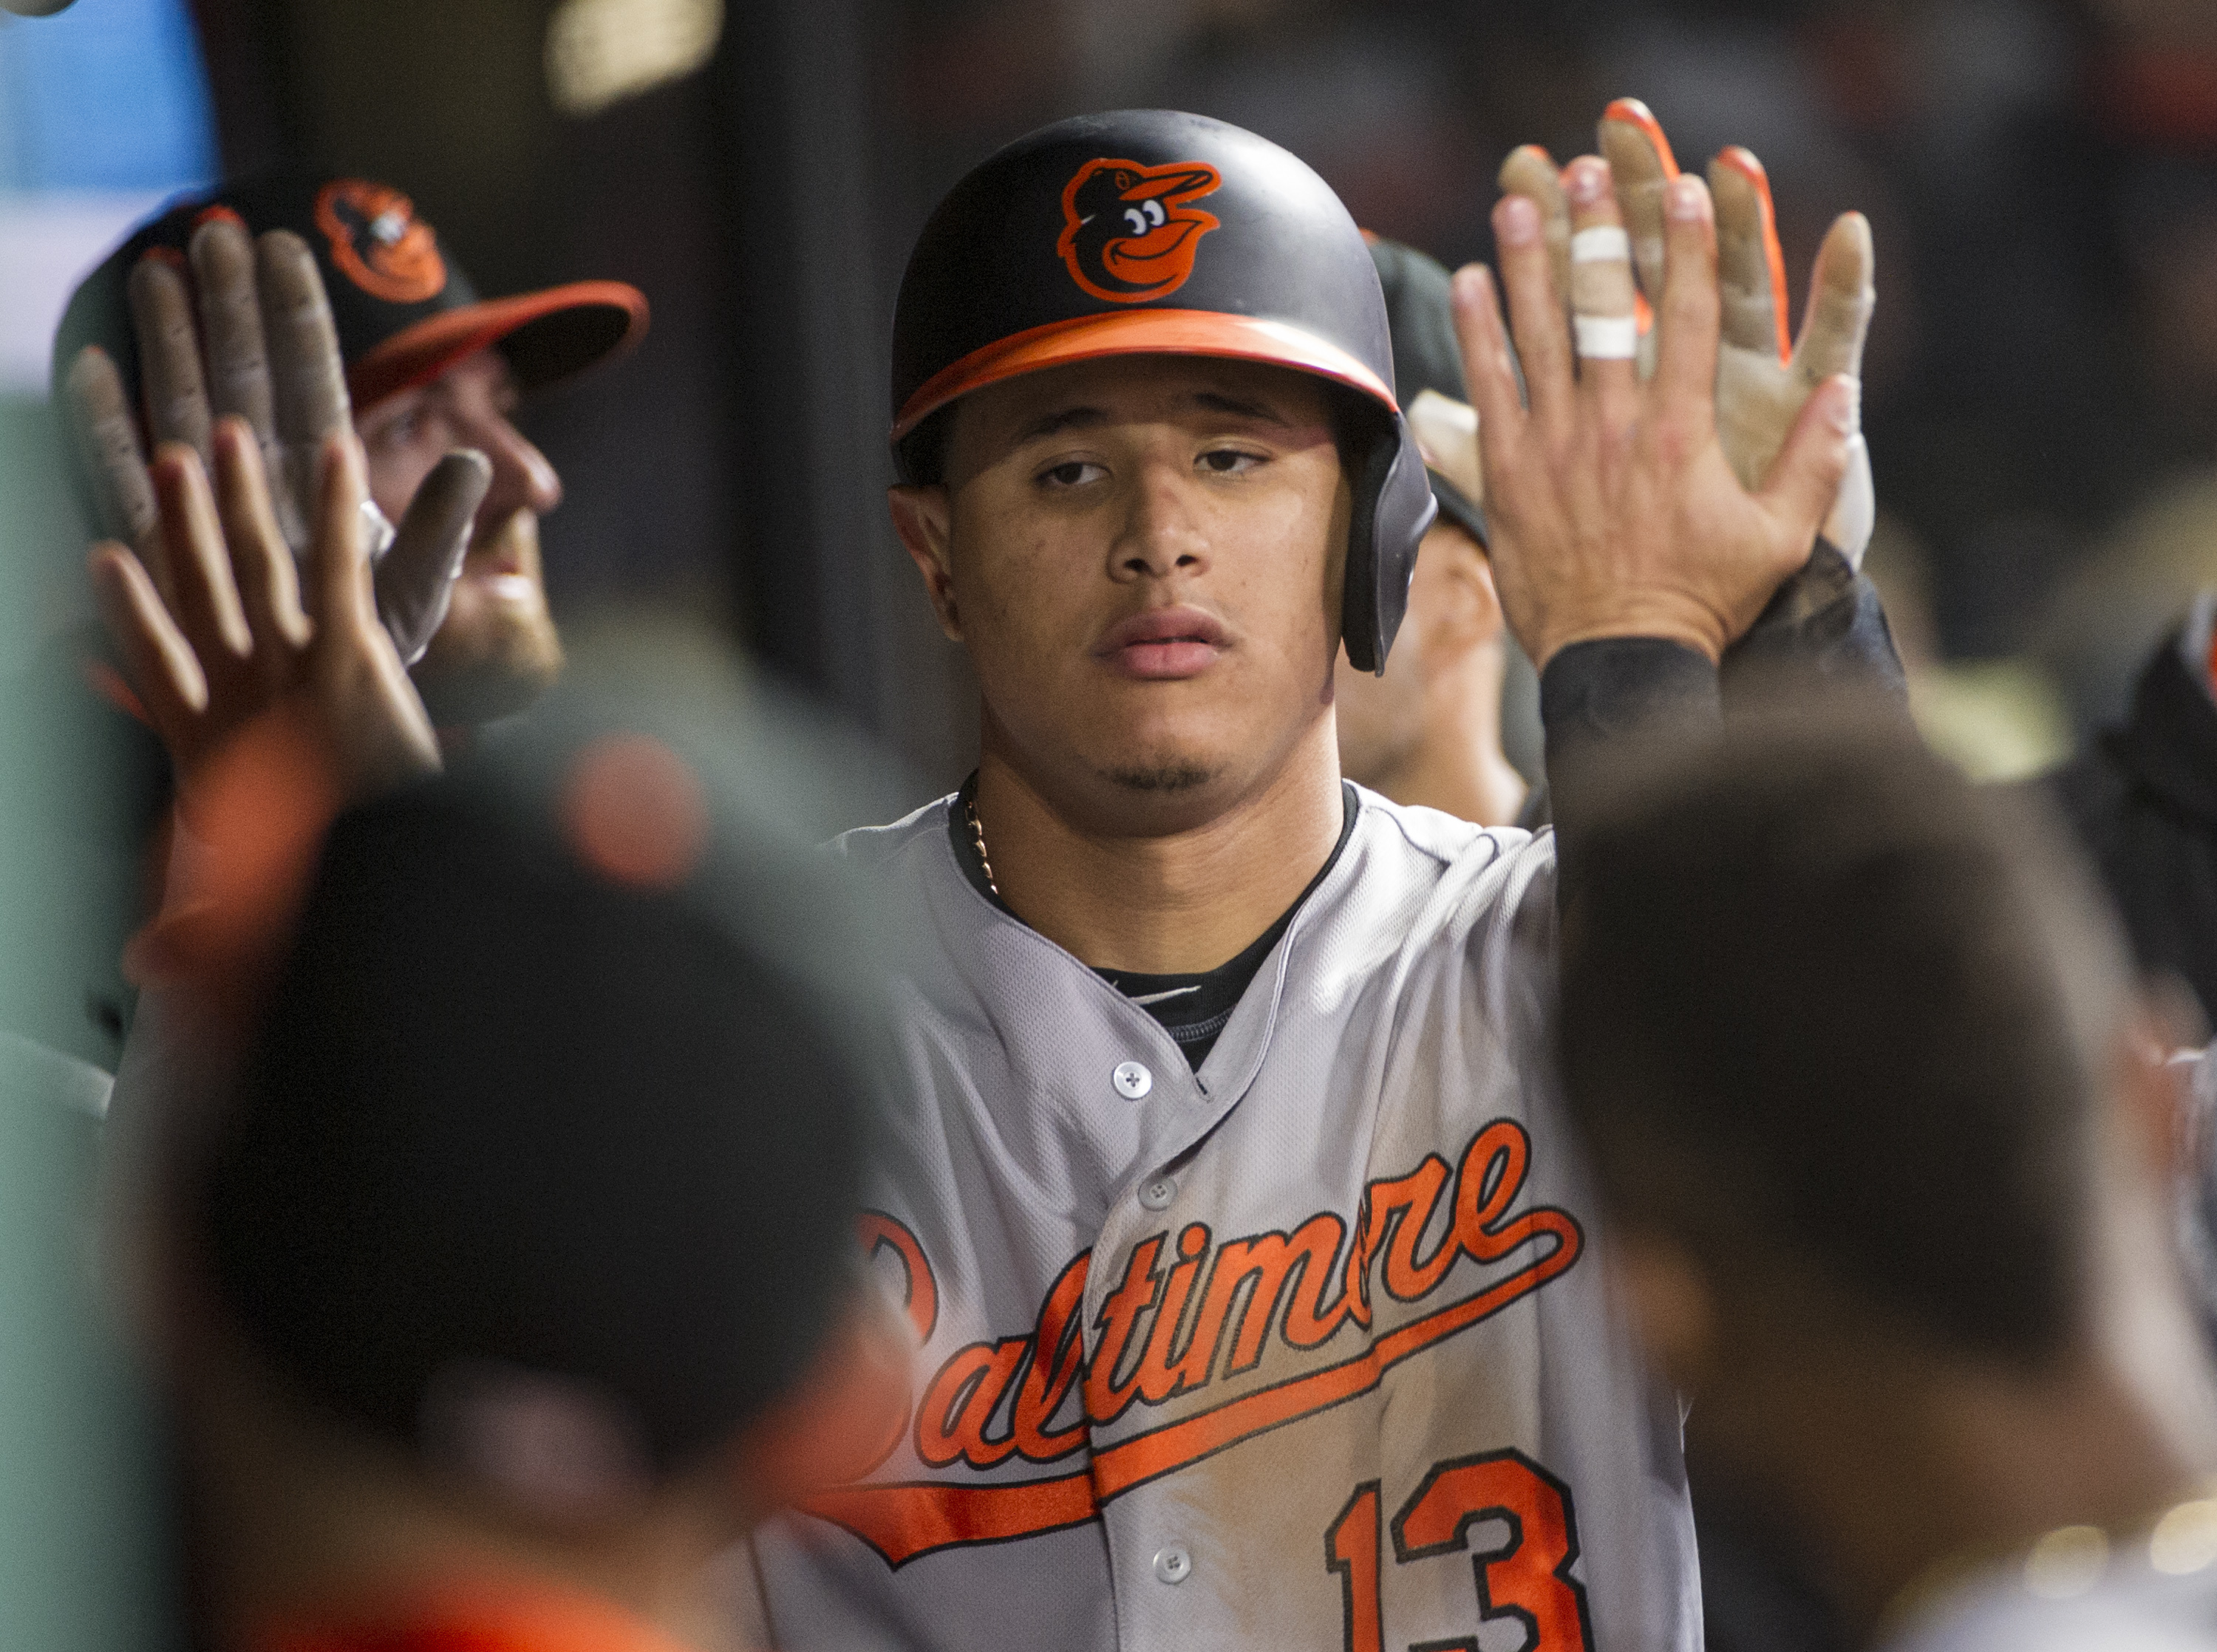 Machado: On the block and on the way to the White Sox?